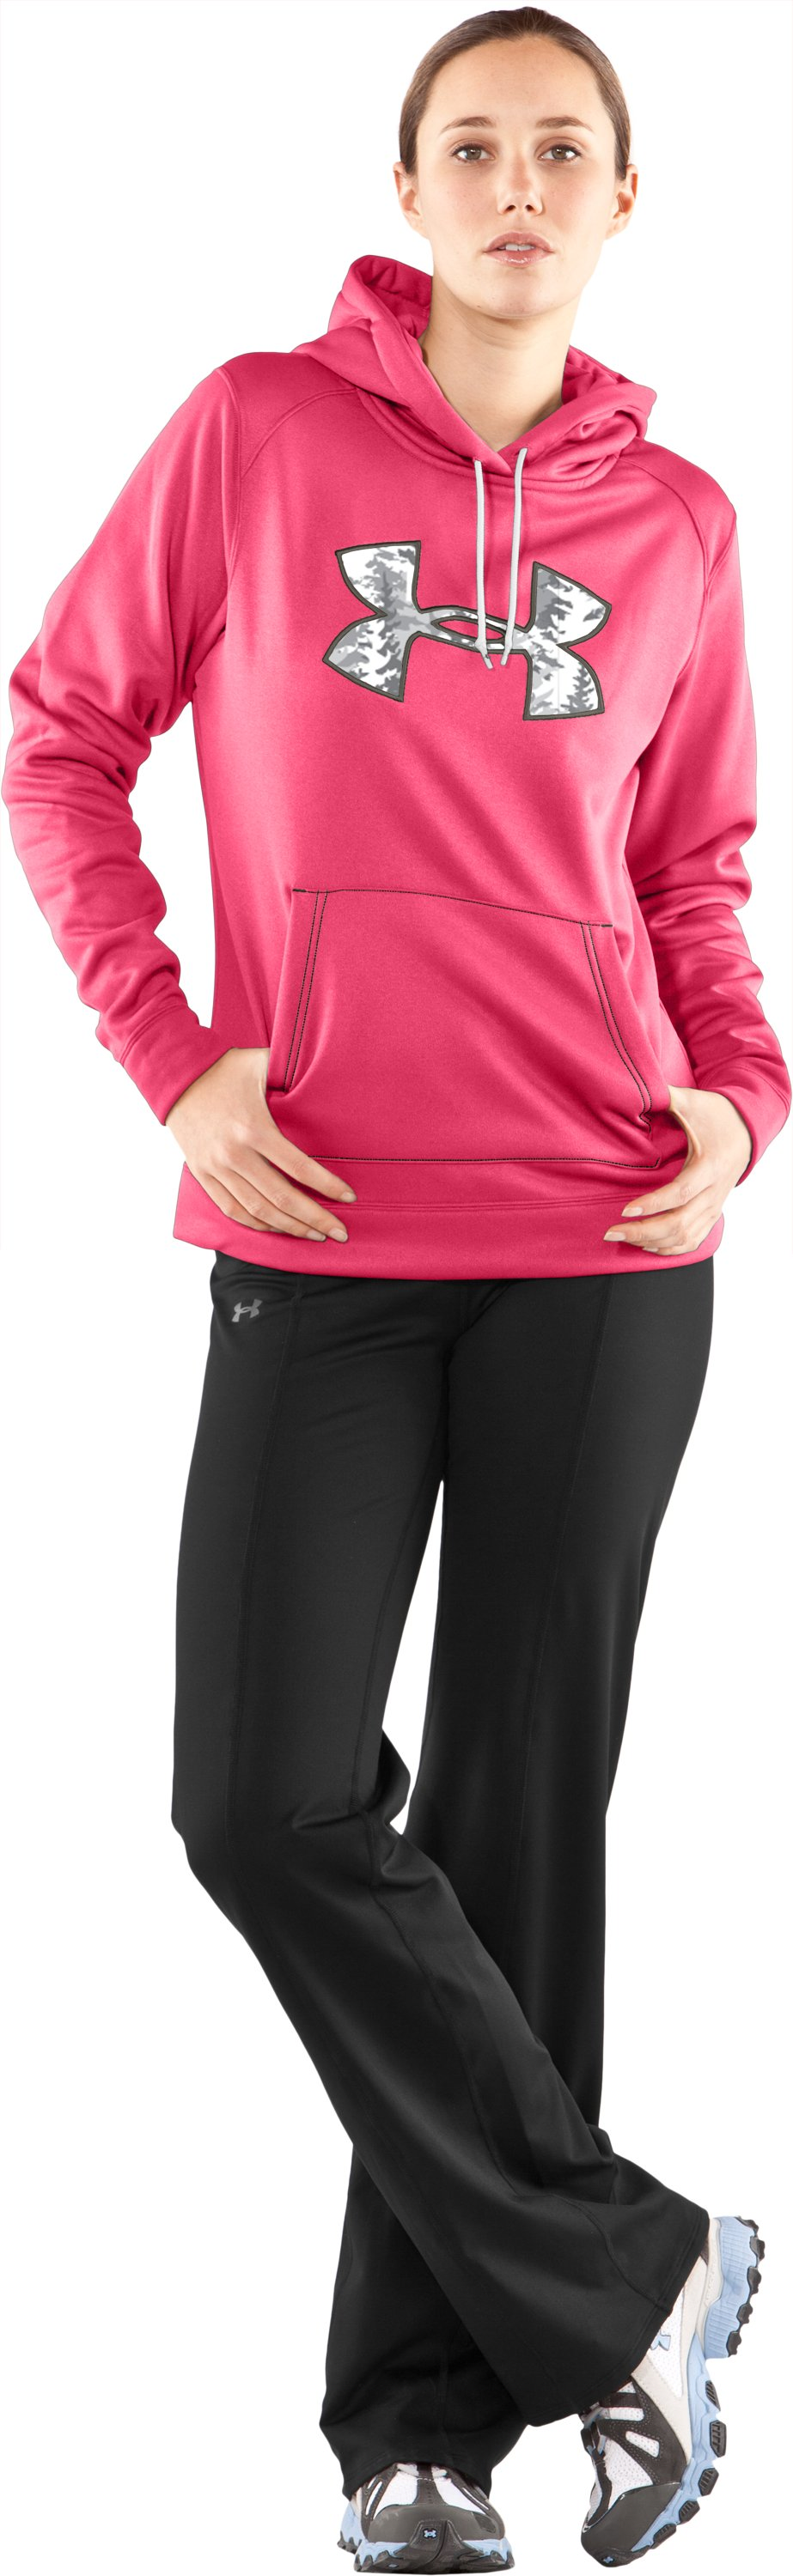 Women's UA Storm Tackle Twill Hoodie, Perfection, zoomed image